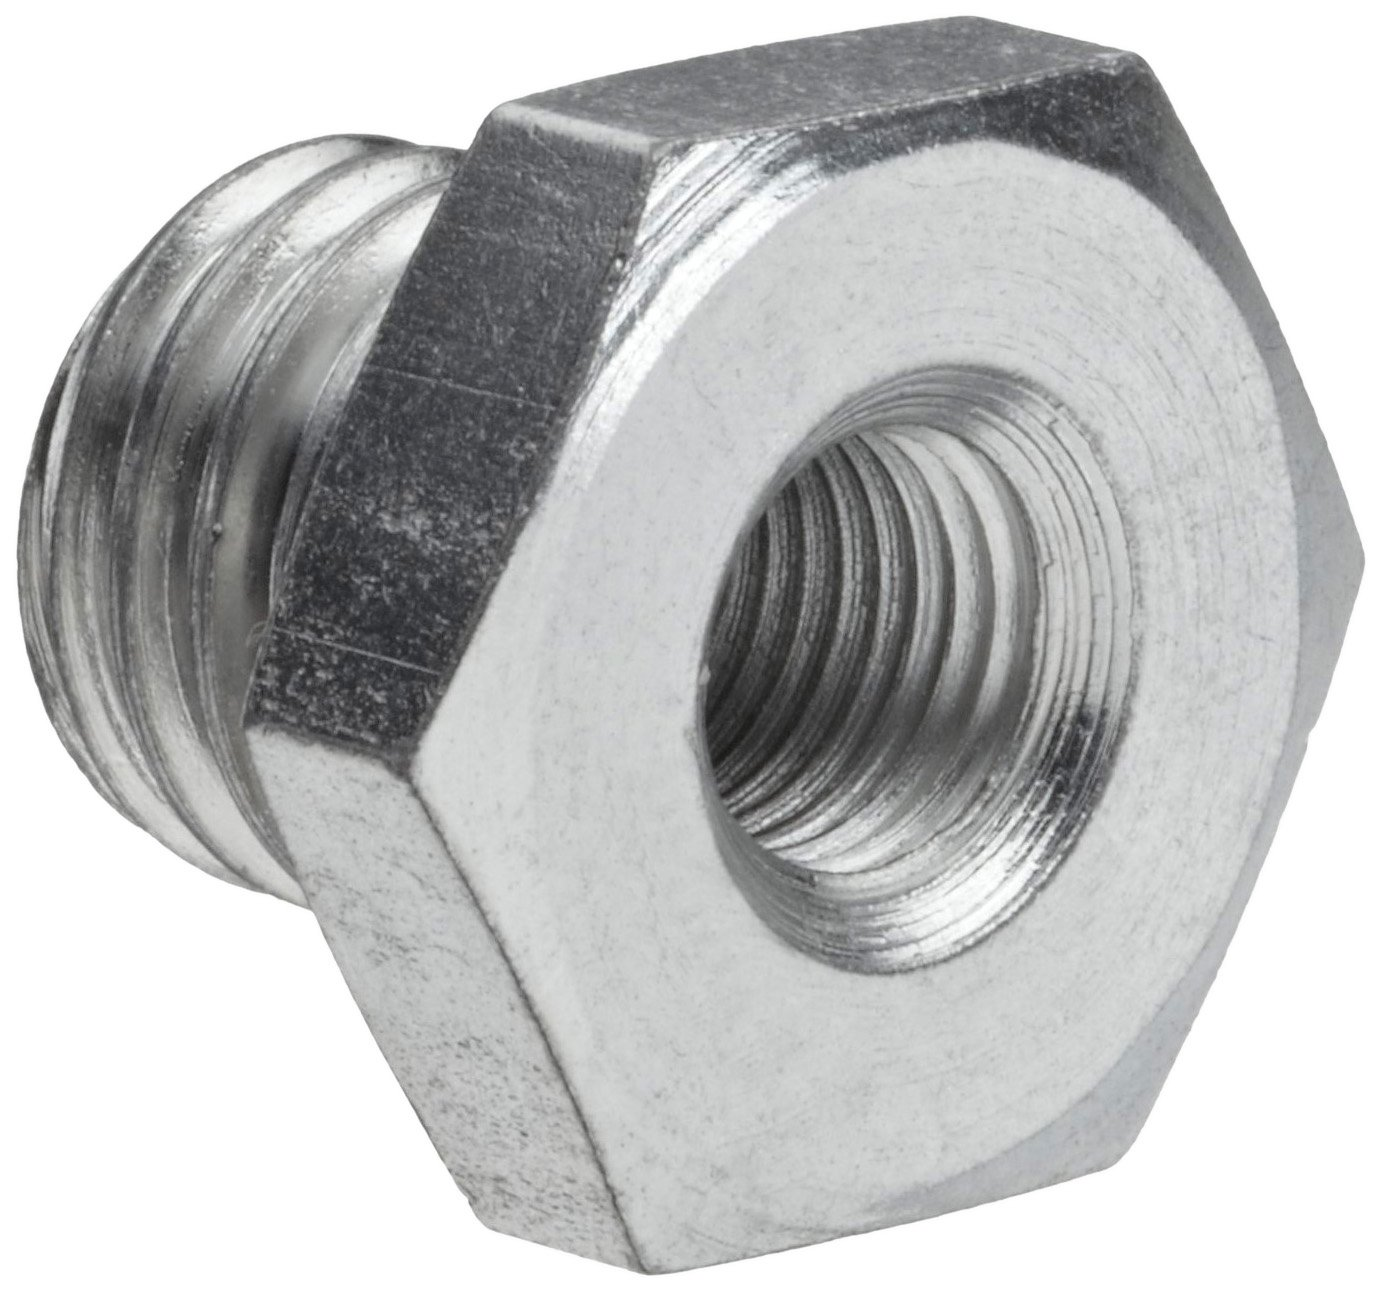 Weiler Mighty-Mite 5/8'-11 Fixed, M10 x 1.25 Adapted Thread Size Adapter For Cup Or Wheel Brush Weiler Corporation 07771